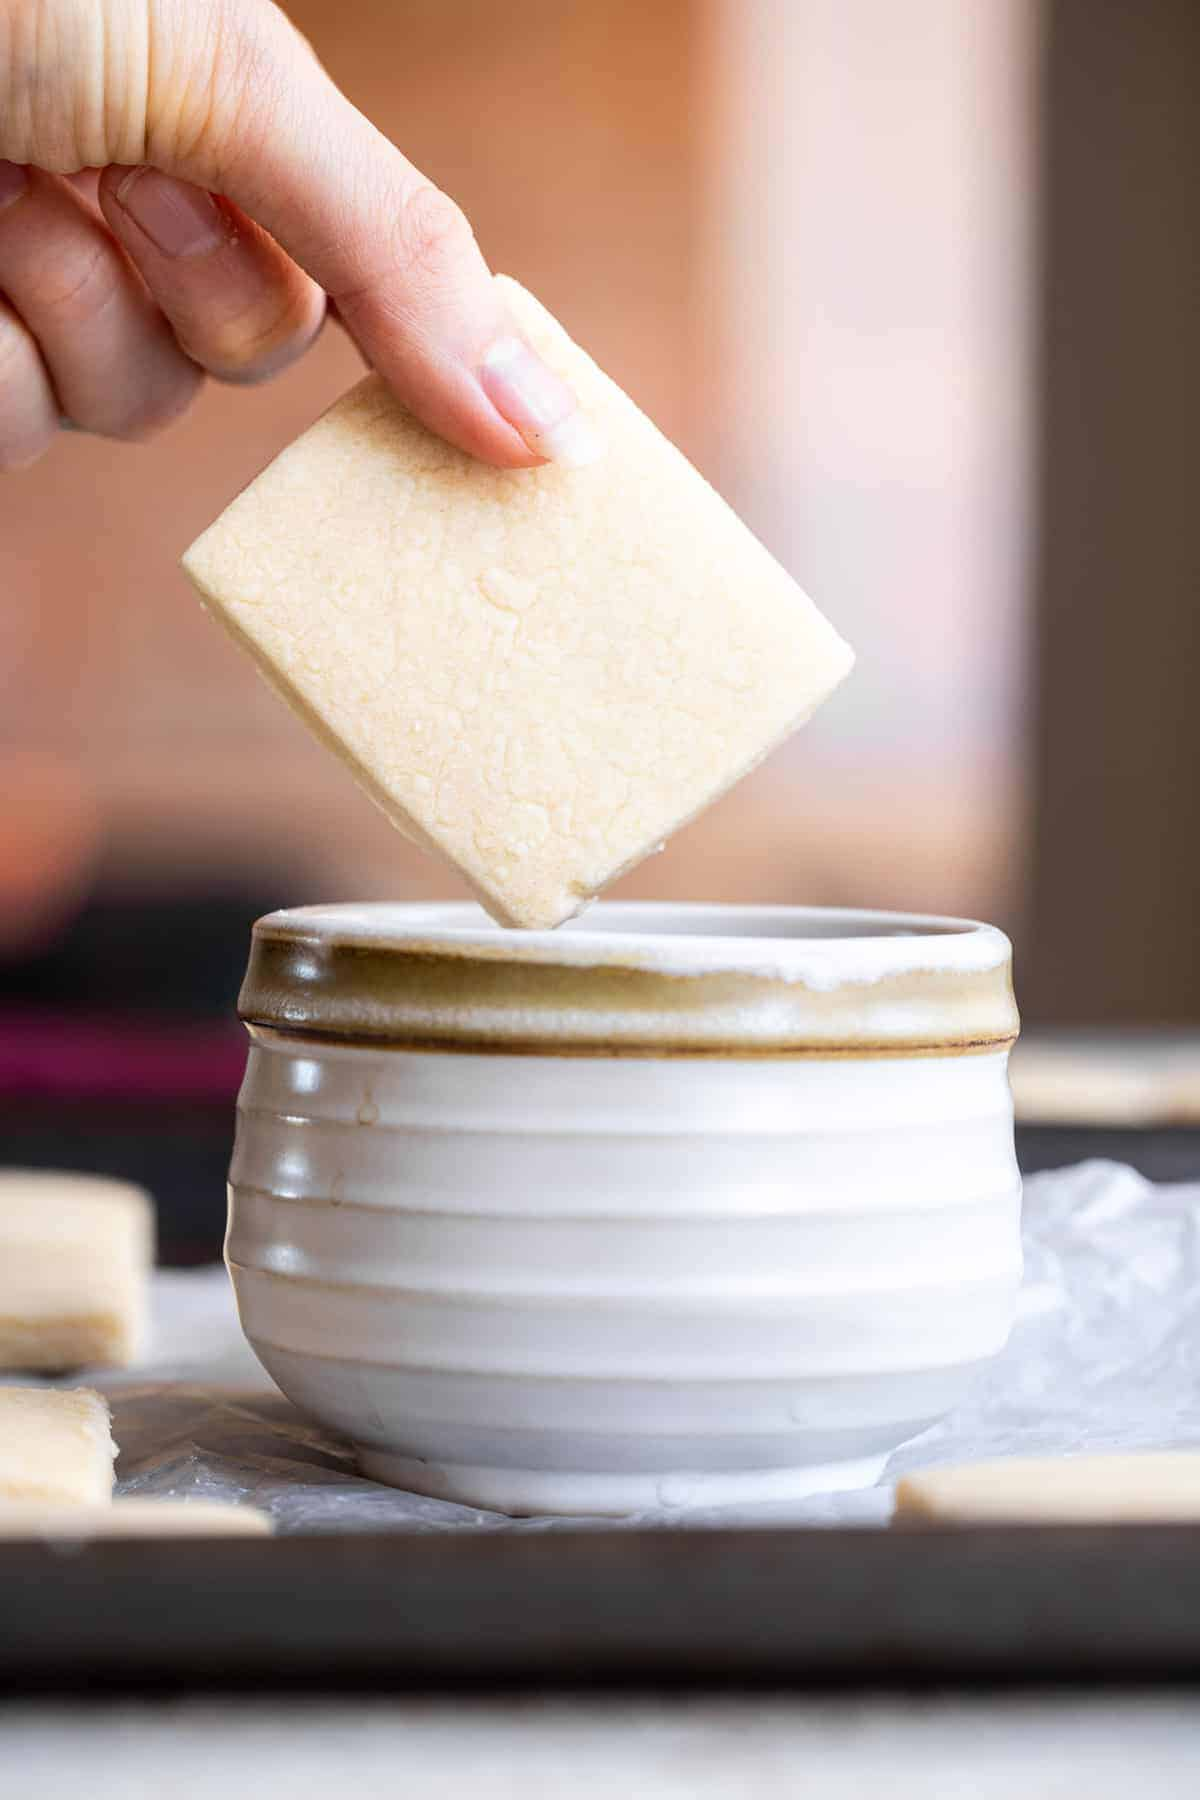 Vegan butter cookies being dipped into a cup of coffee